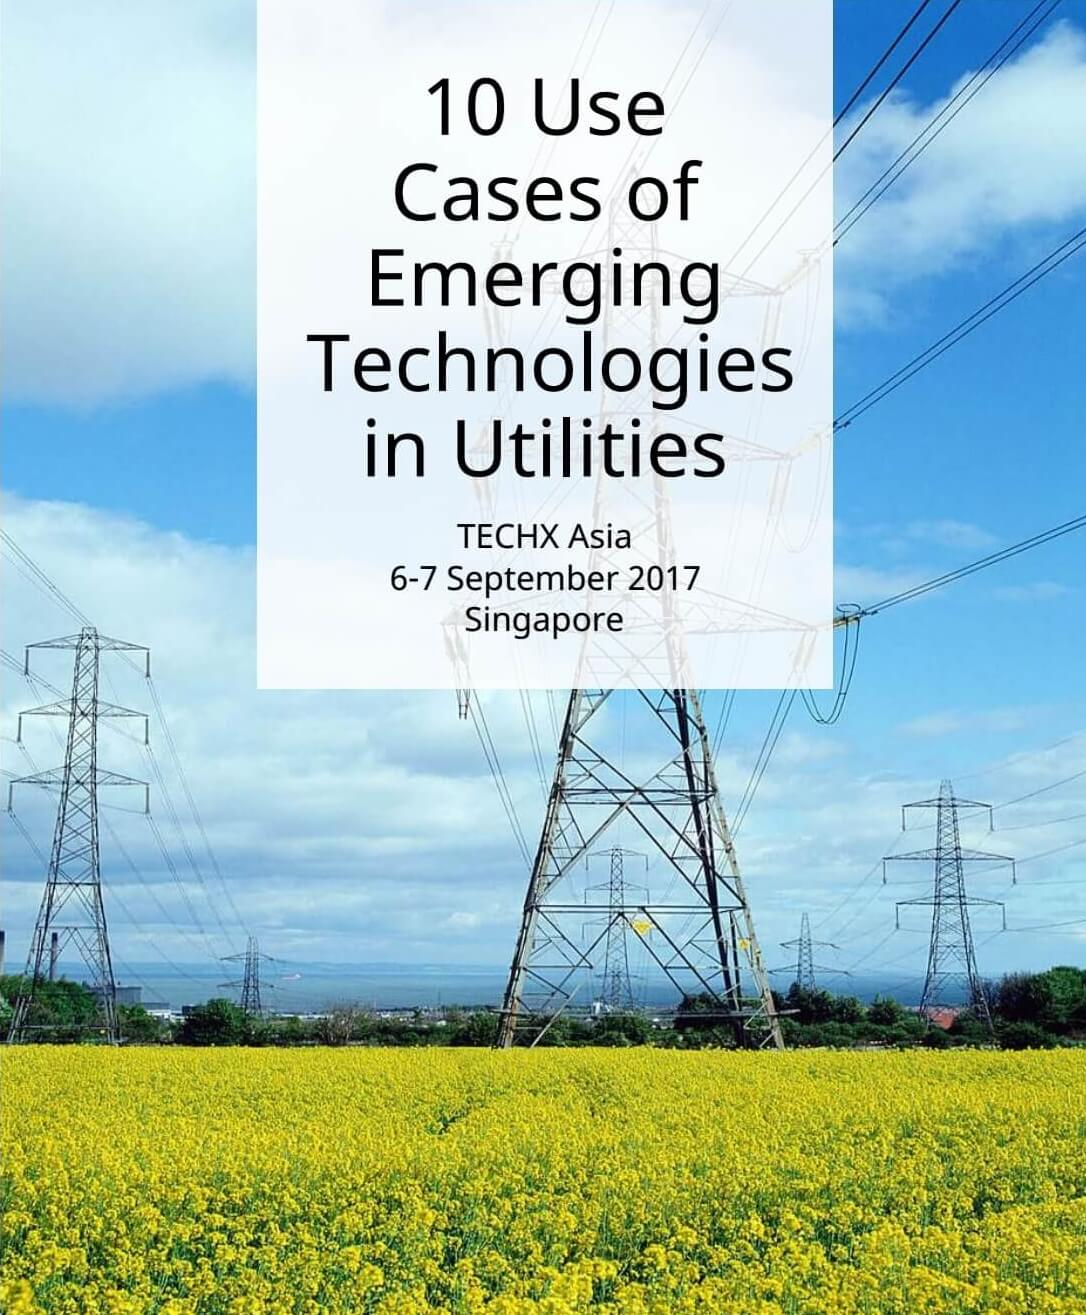 Download TECHX Asia 2017 Ebook on Emerging Technologies use case in logistics ebook